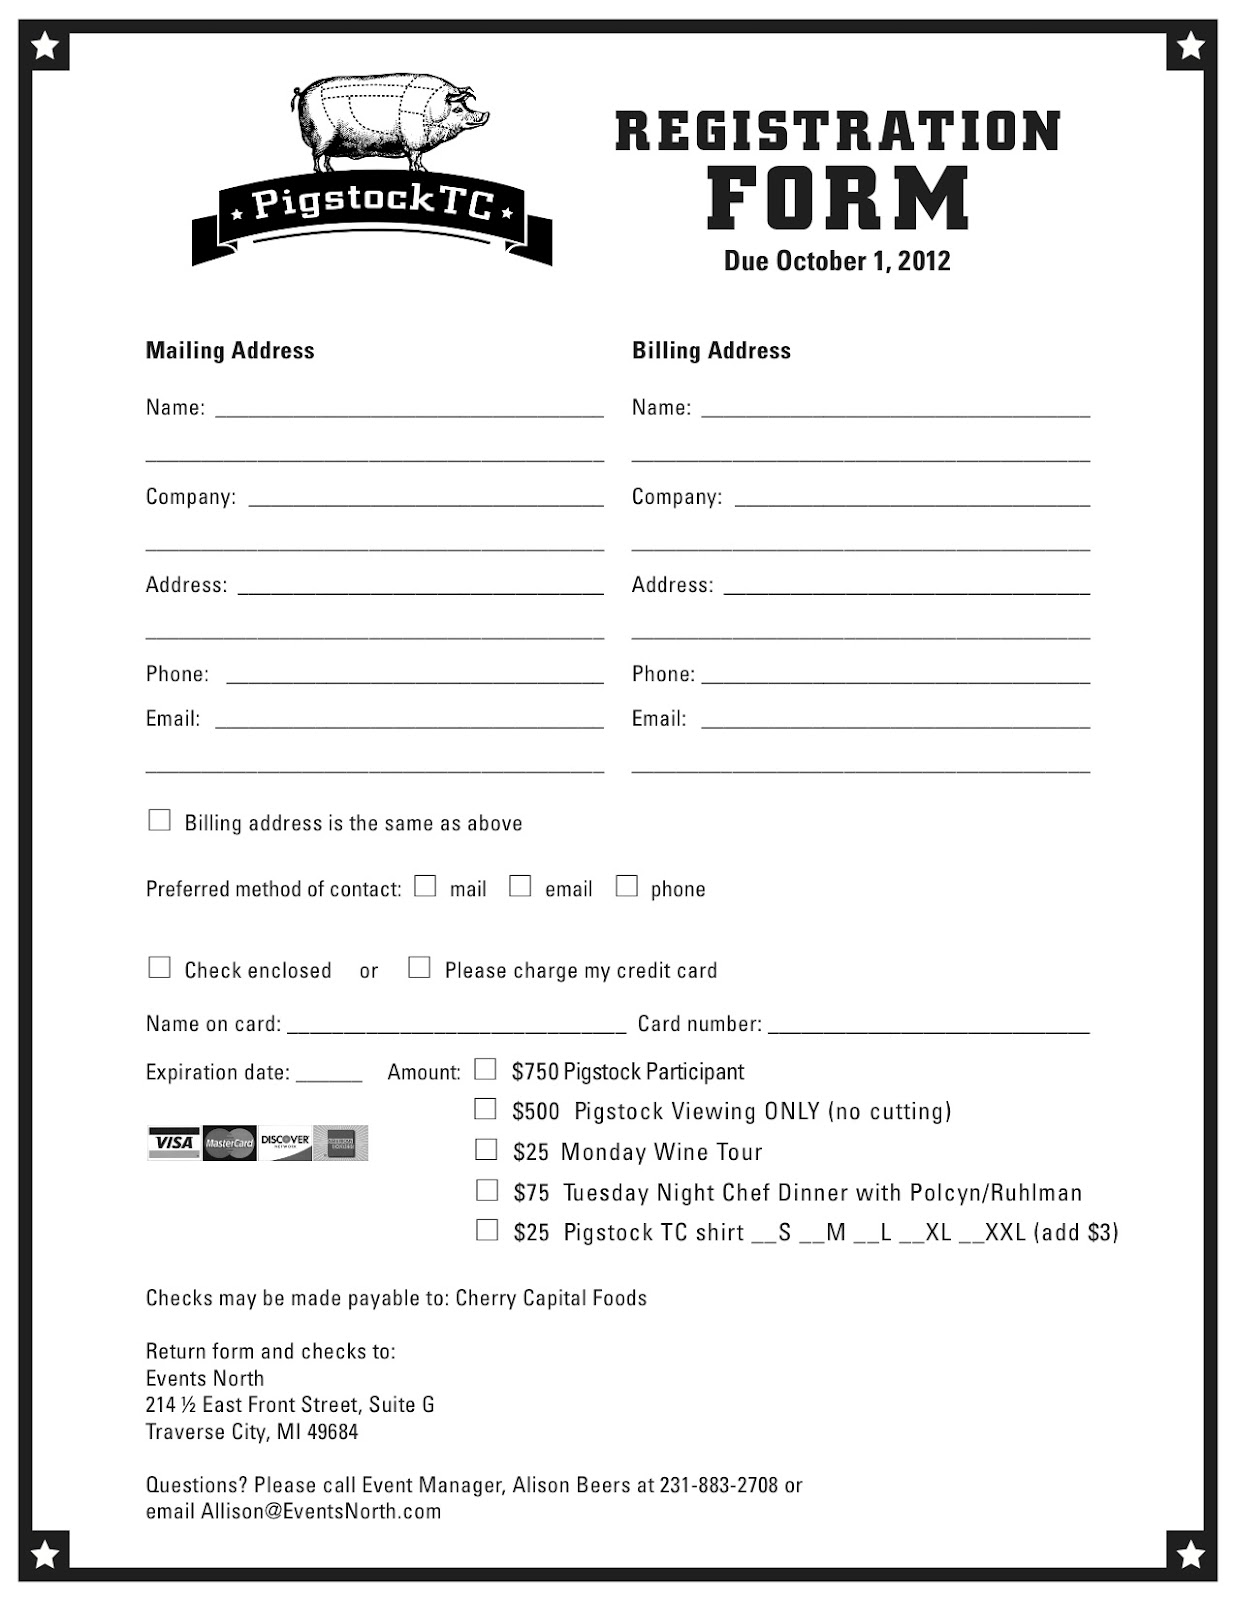 sport registration form template - application form registration form template printable